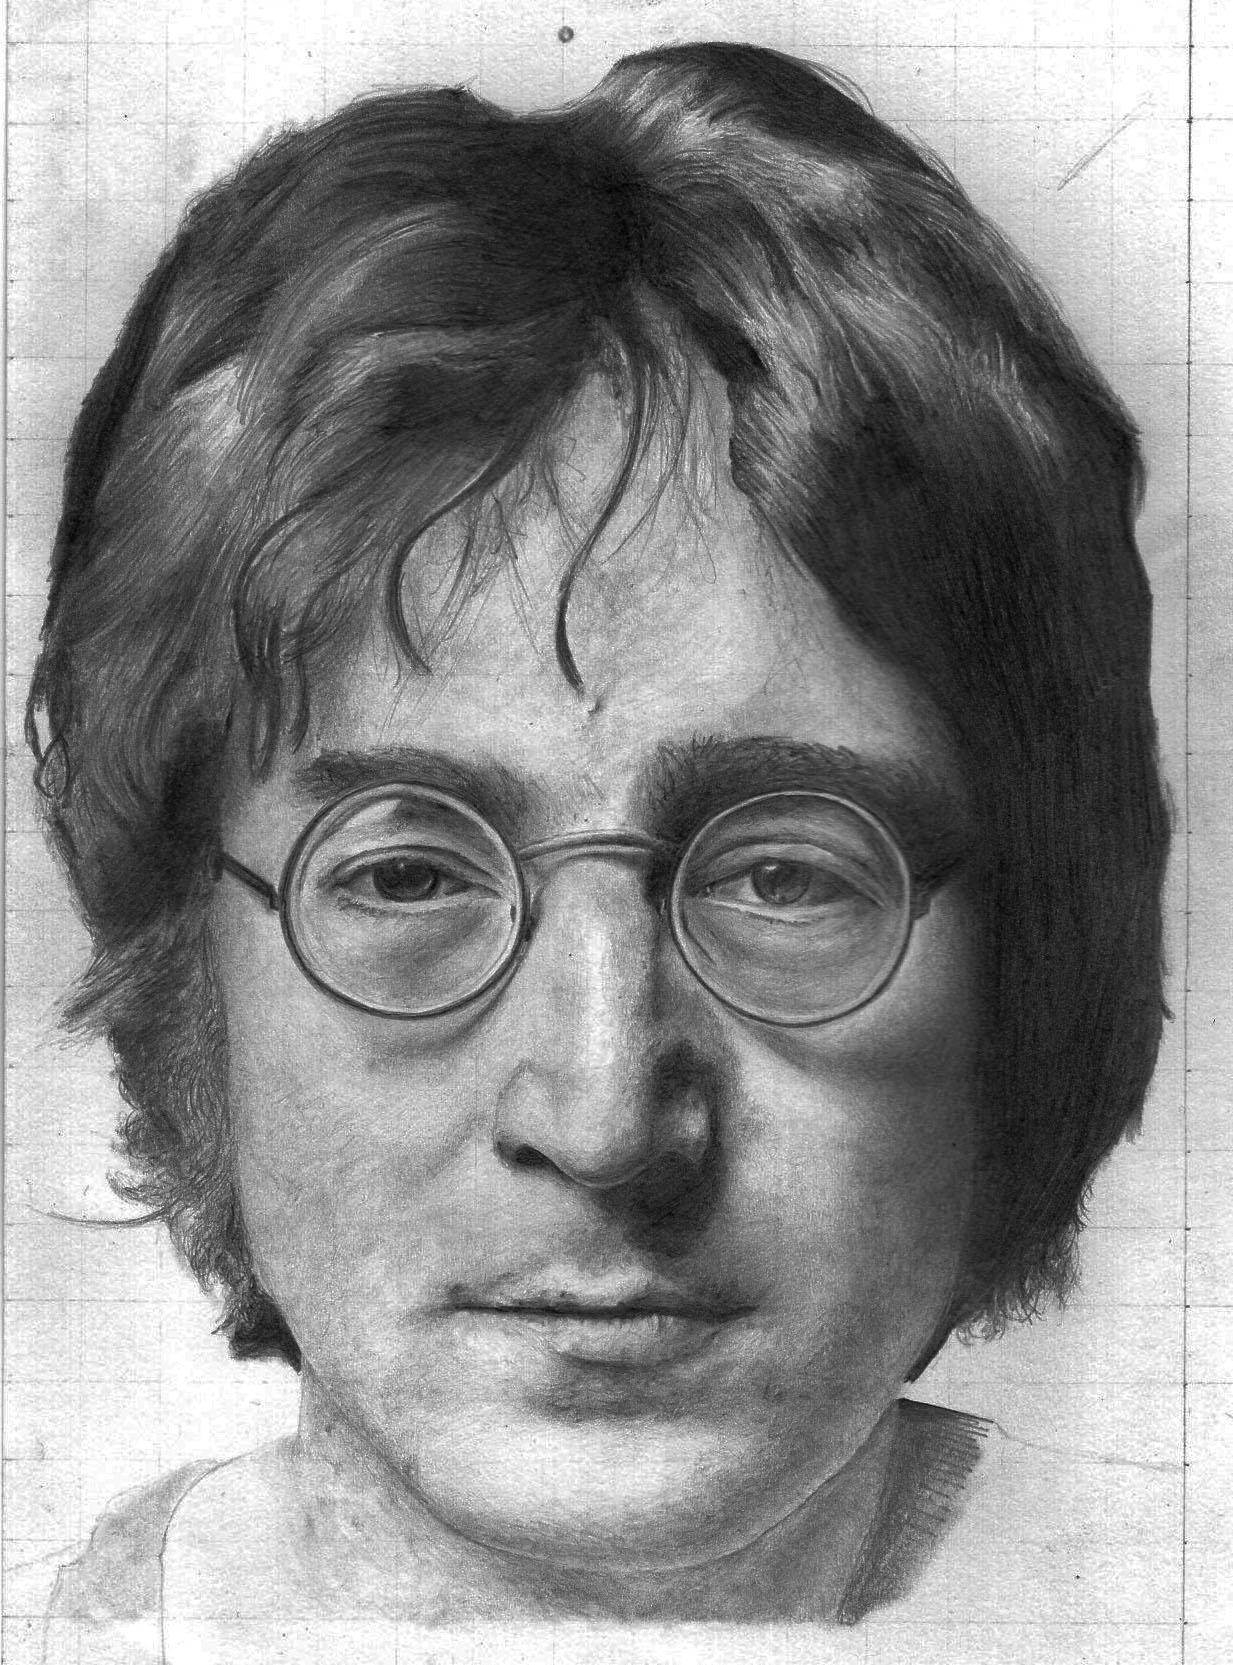 This is an image of Amazing John Lennon Drawing